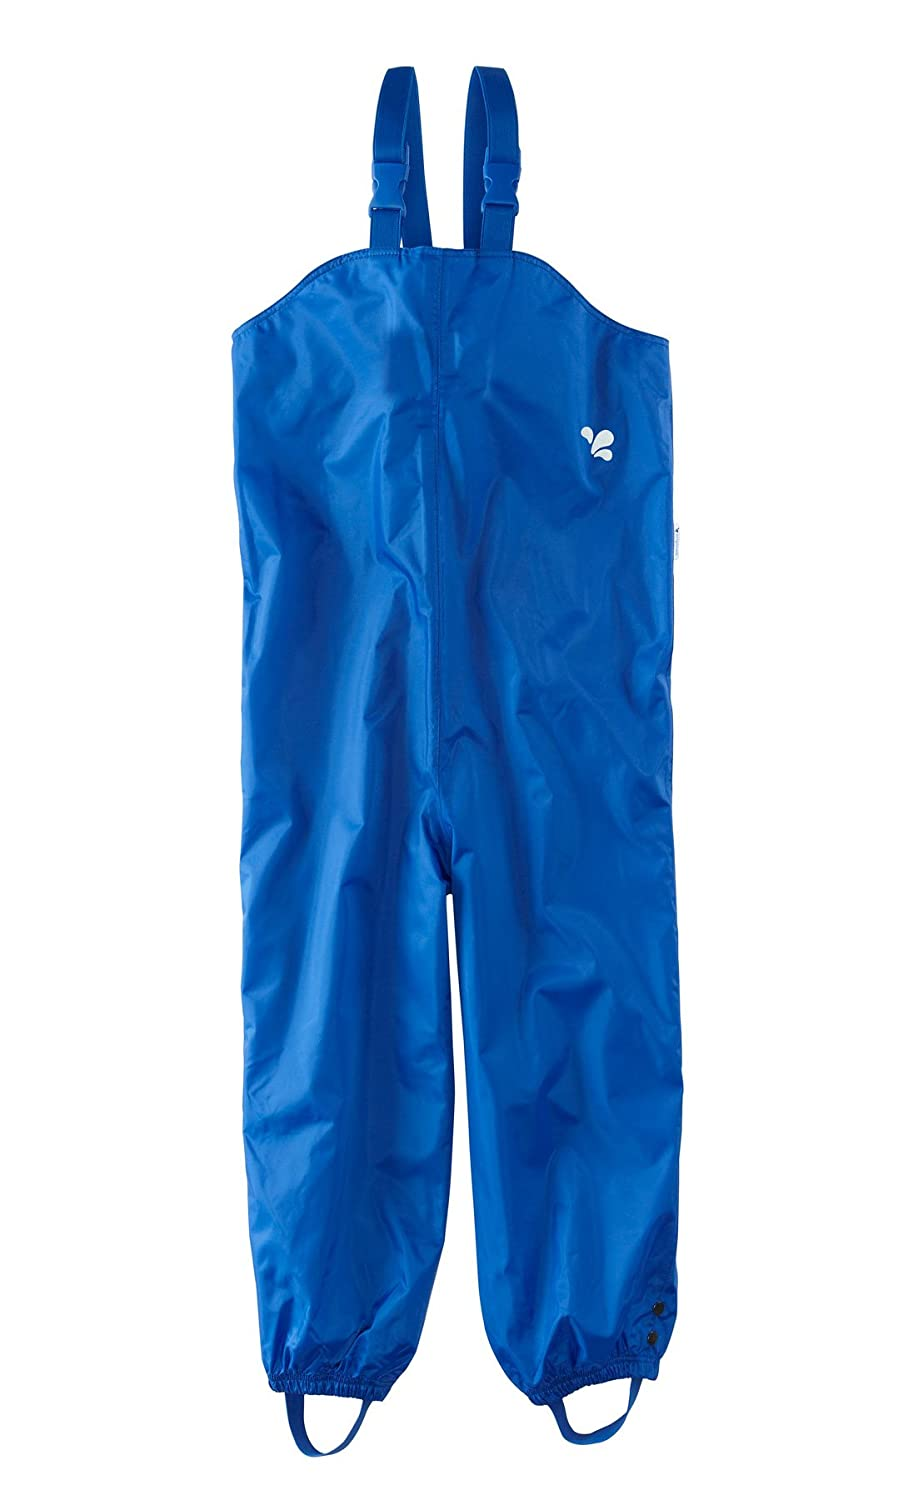 Muddy Puddles Childrens Waterproof Dungarees - Royal Blue Protective kids overalls rainwear PUDROYAL